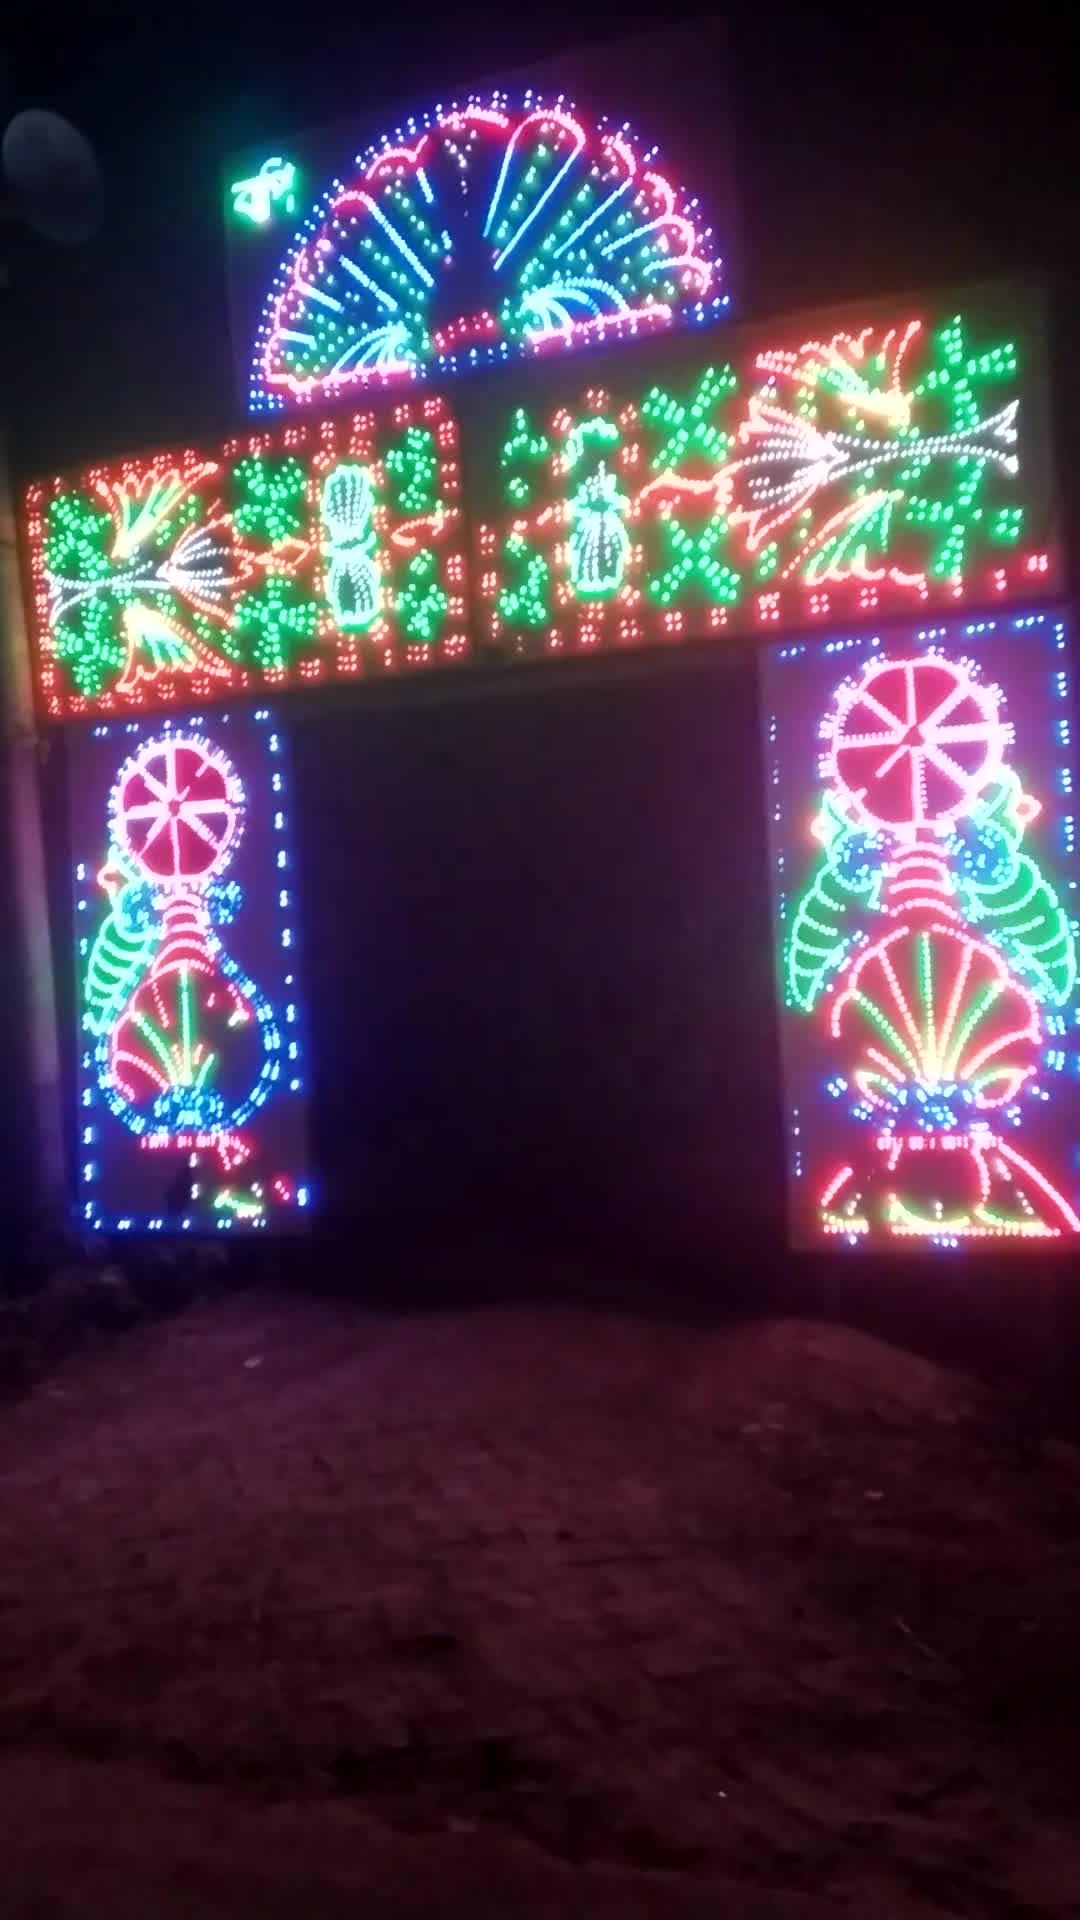 Video of a beautiful music light gate